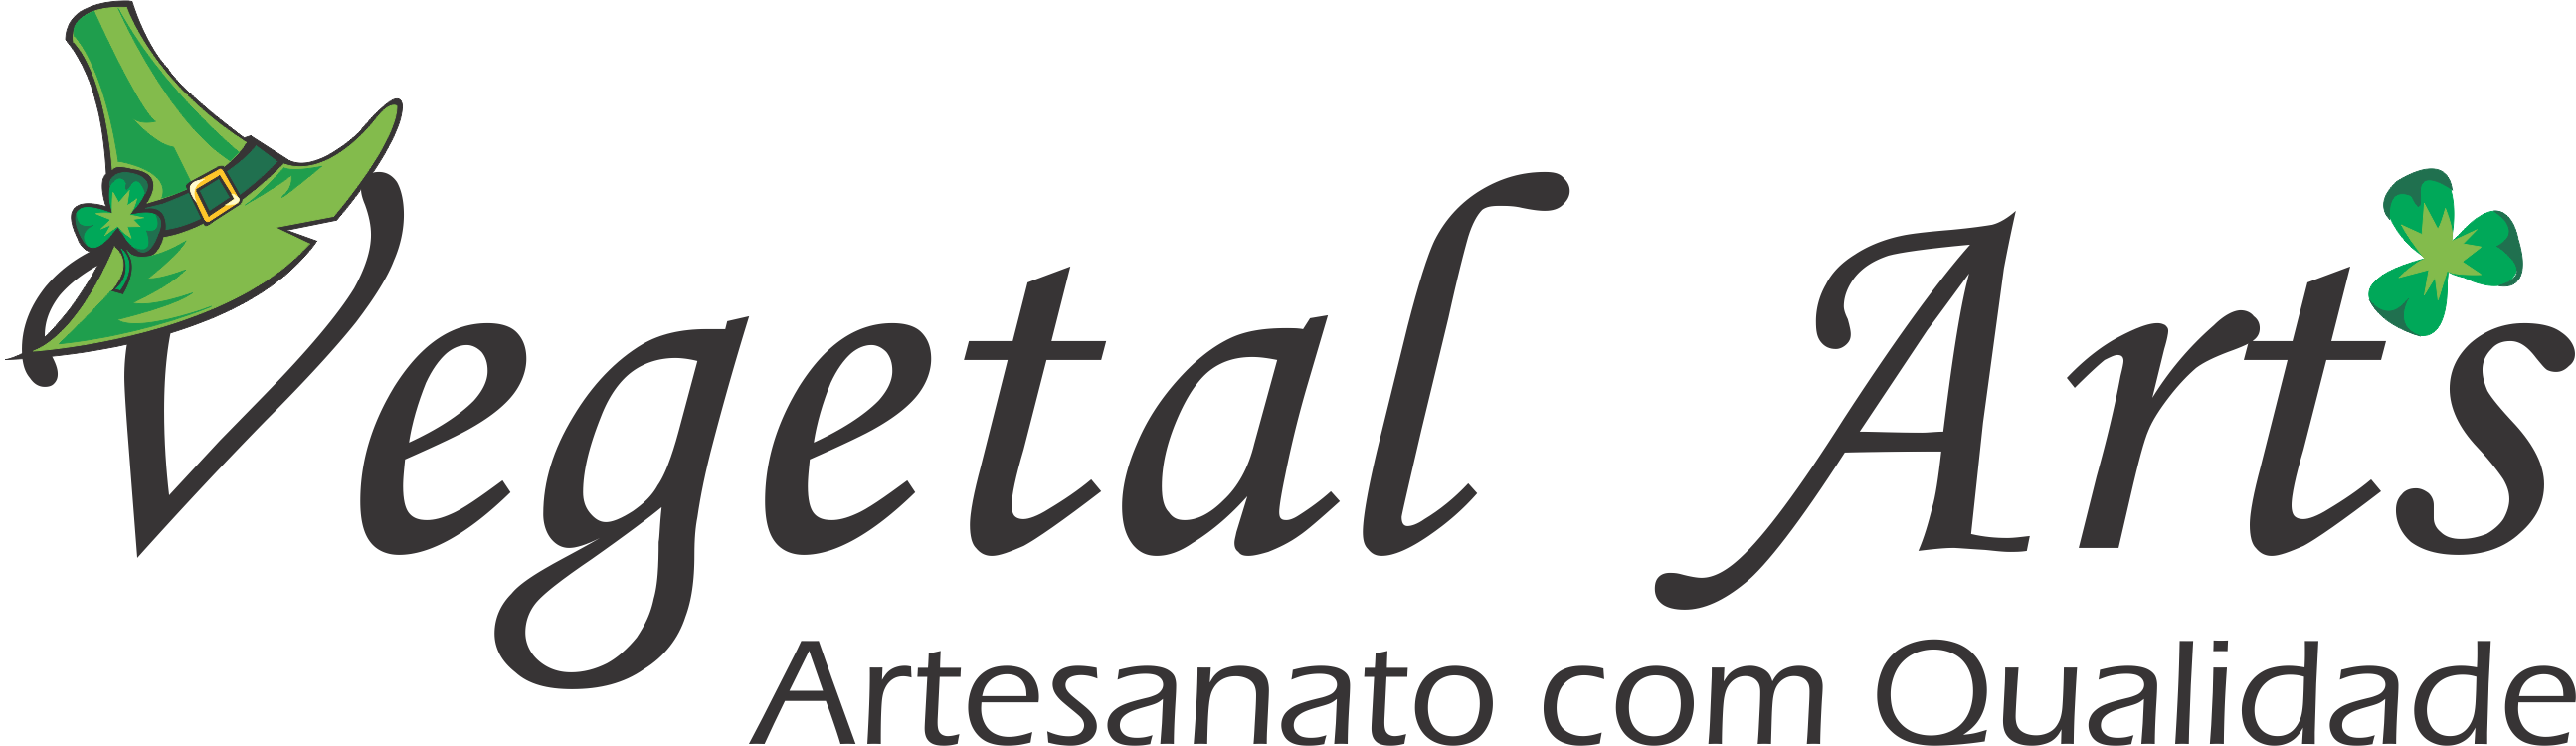 Vegetal arts logo